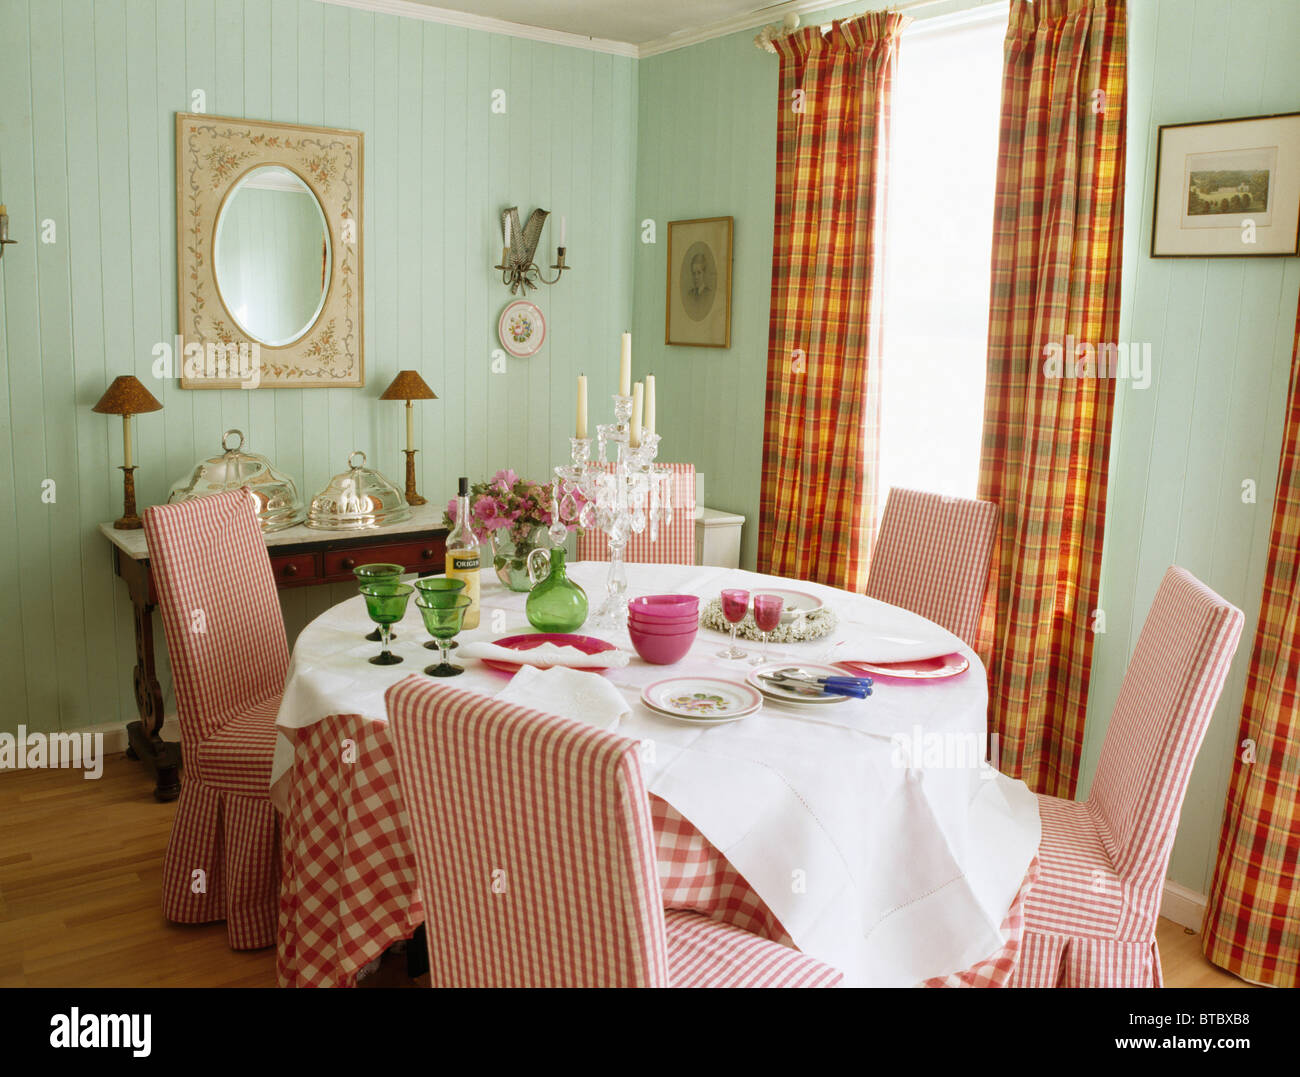 Red white checked upholstered chairs in pale green dining room with stock photo royalty free - Pale green dining room ...